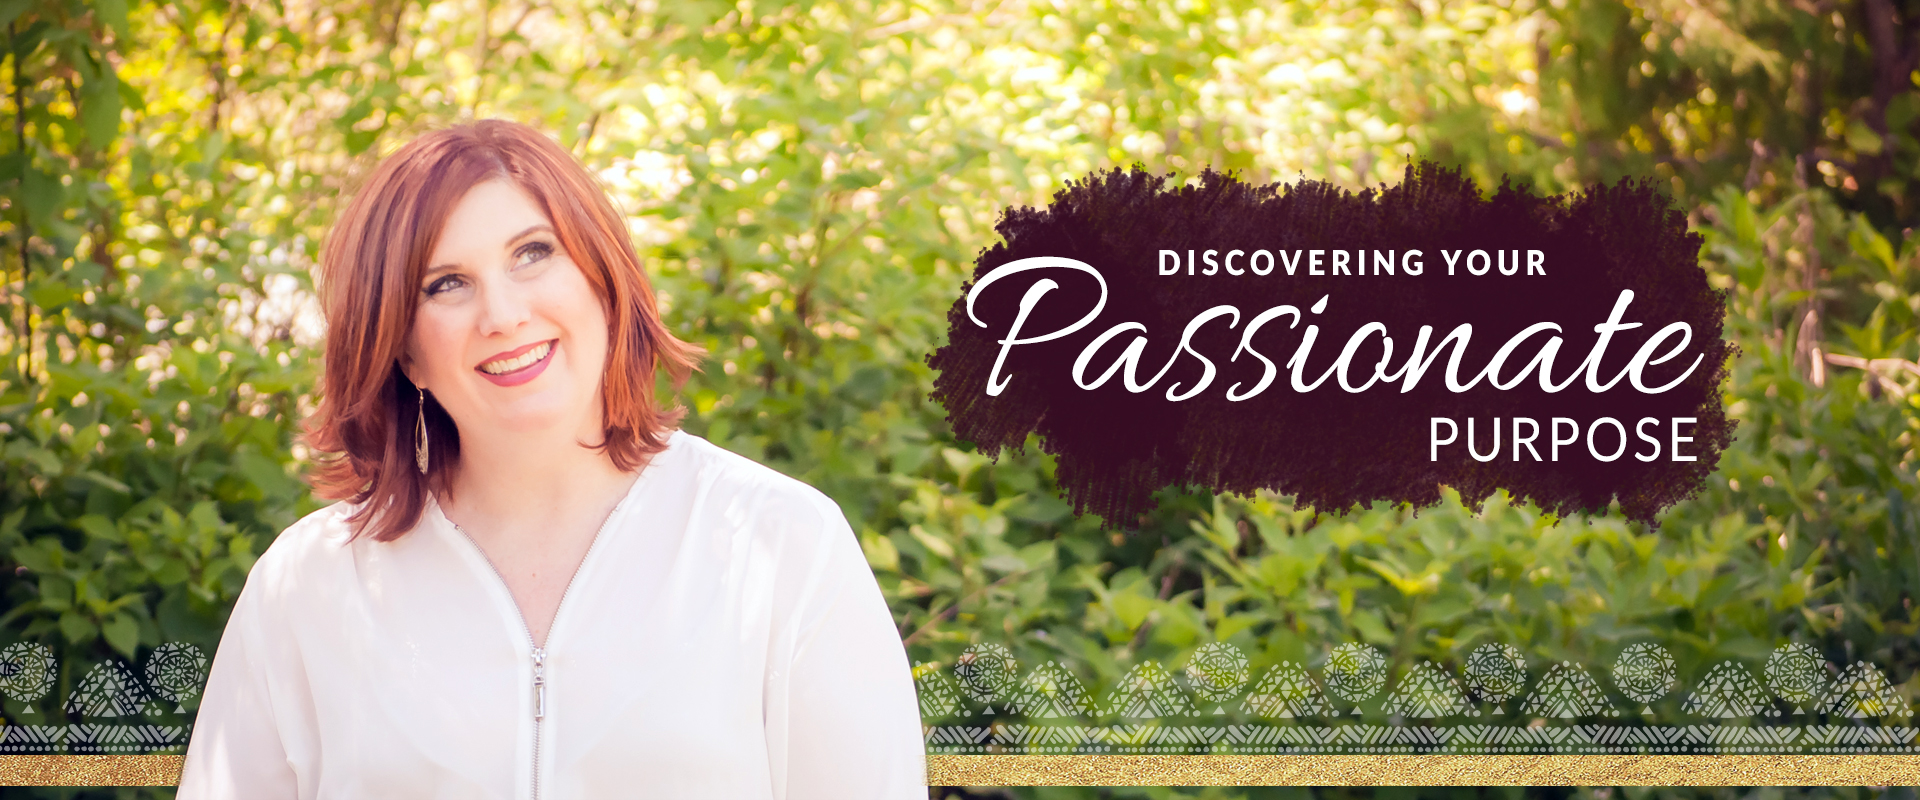 Discovering Your Passionate Purpose